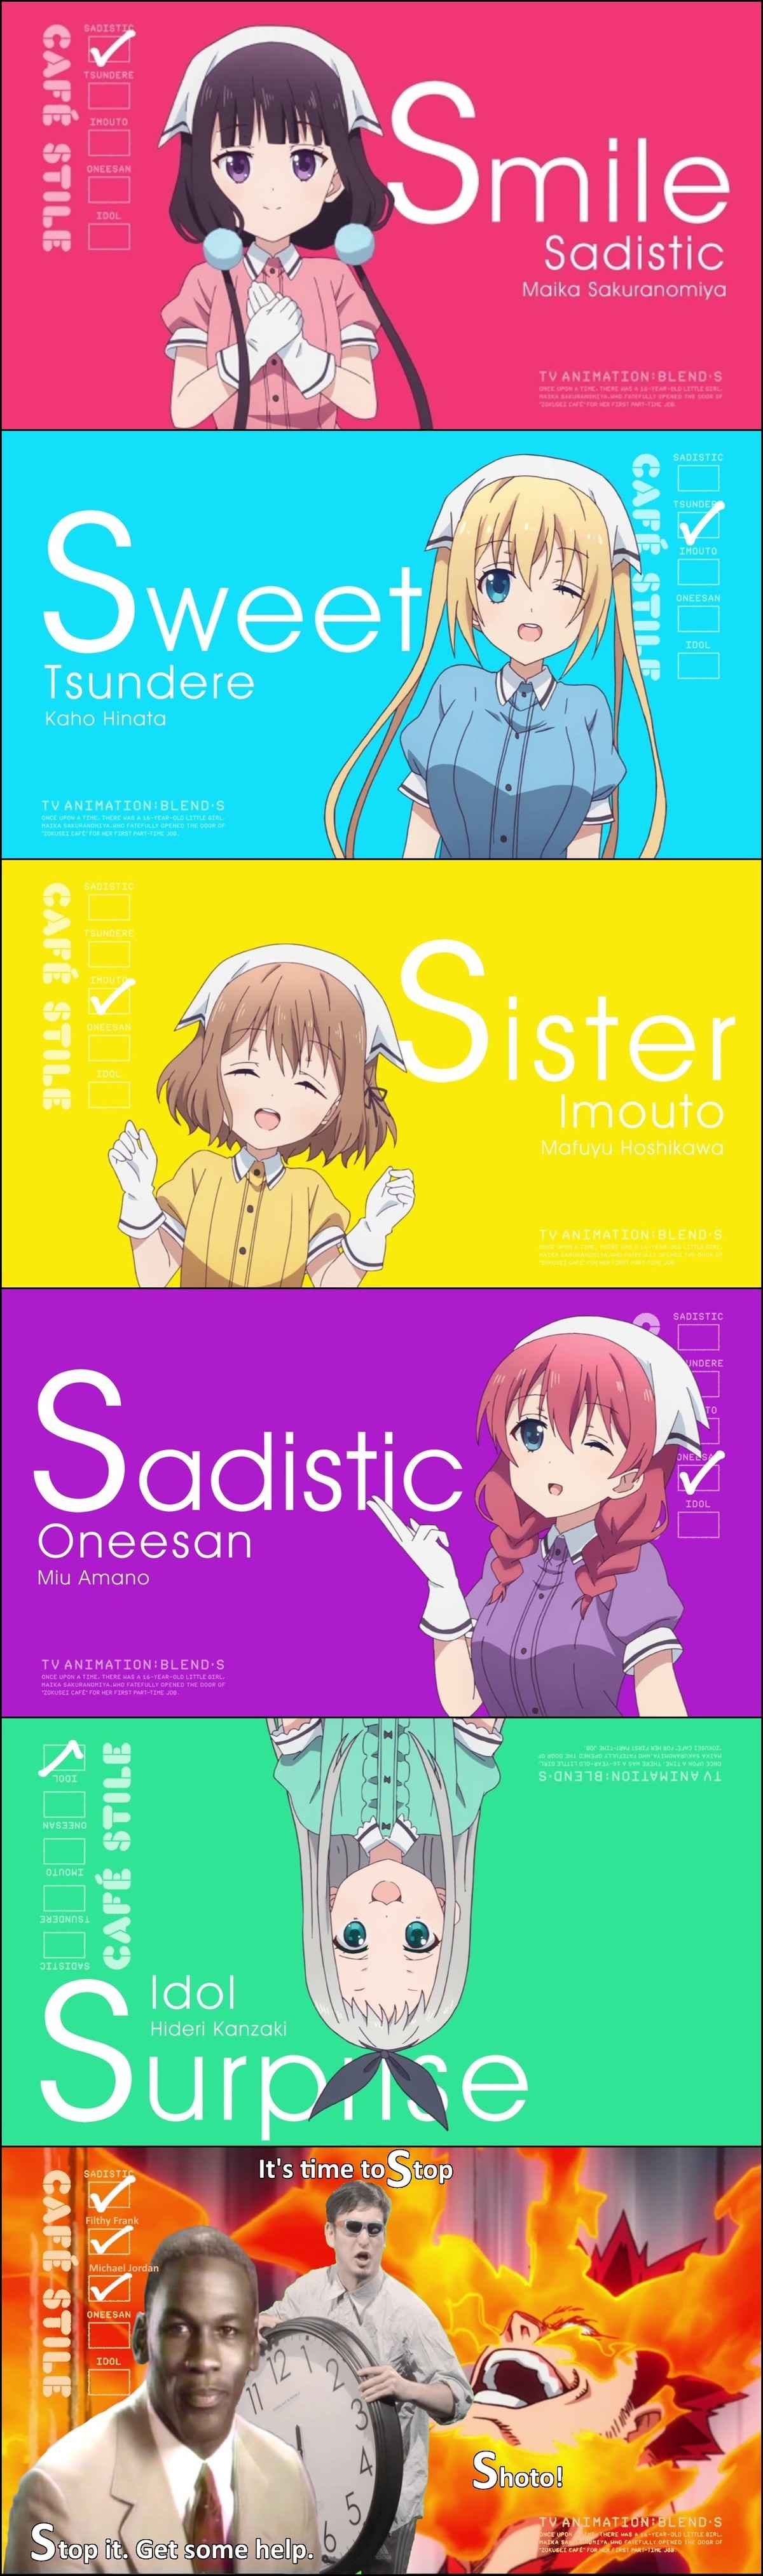 S Stand For. Anime: Blend S Idea: . Smile Sadistic Memo Gleeson Mm Amano. S stands for STANDO POWA!